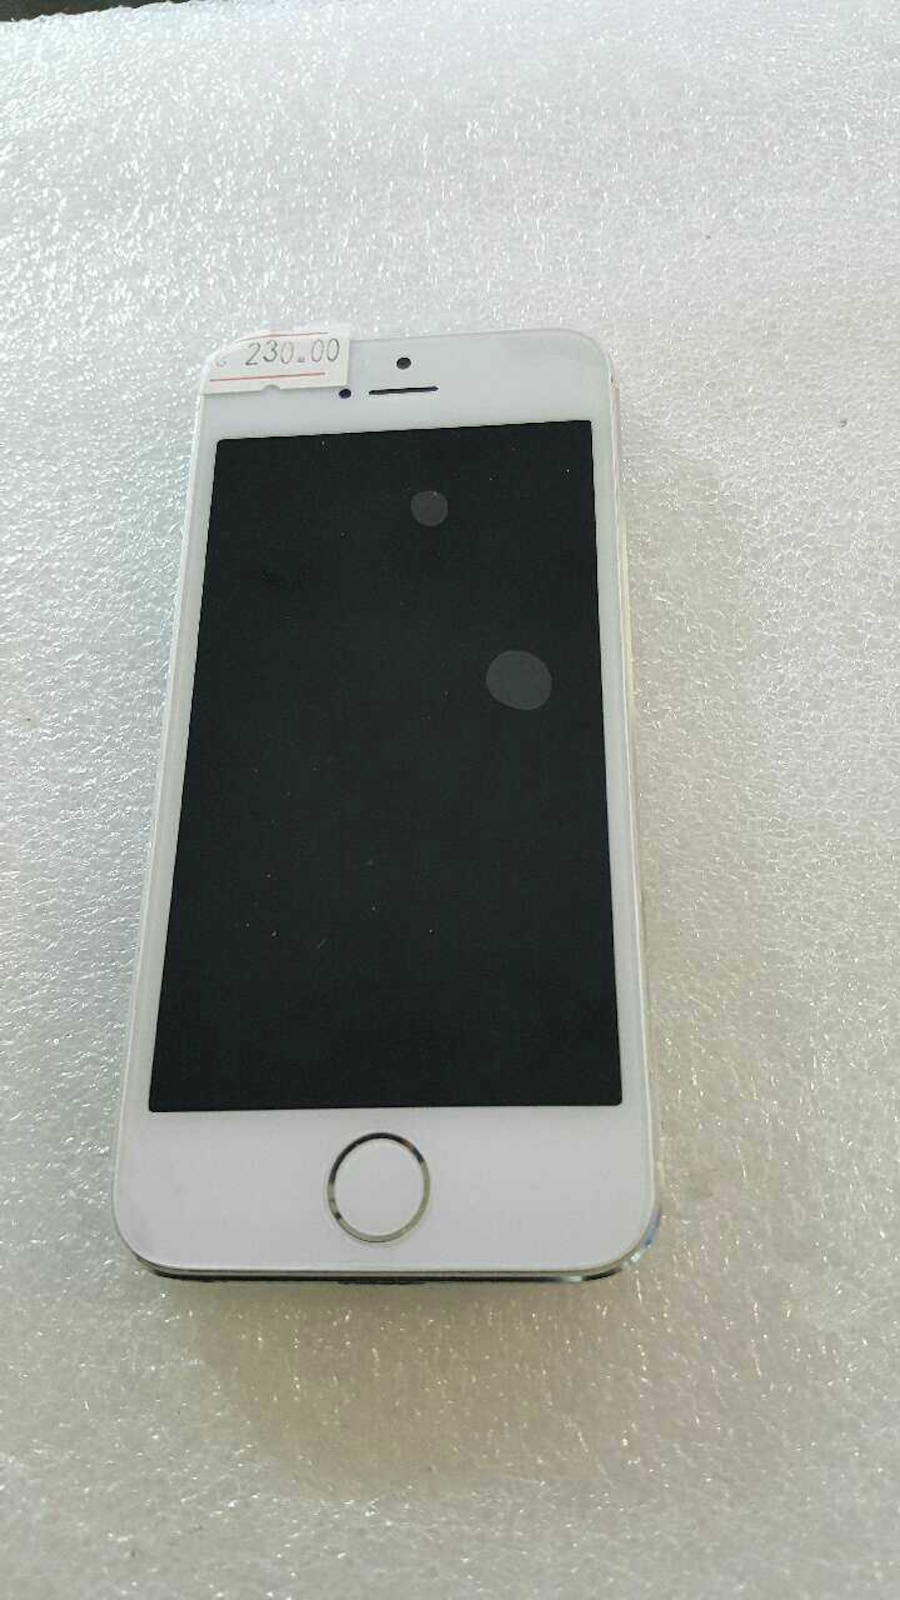 Iphone 5 a 199€ - Giussano